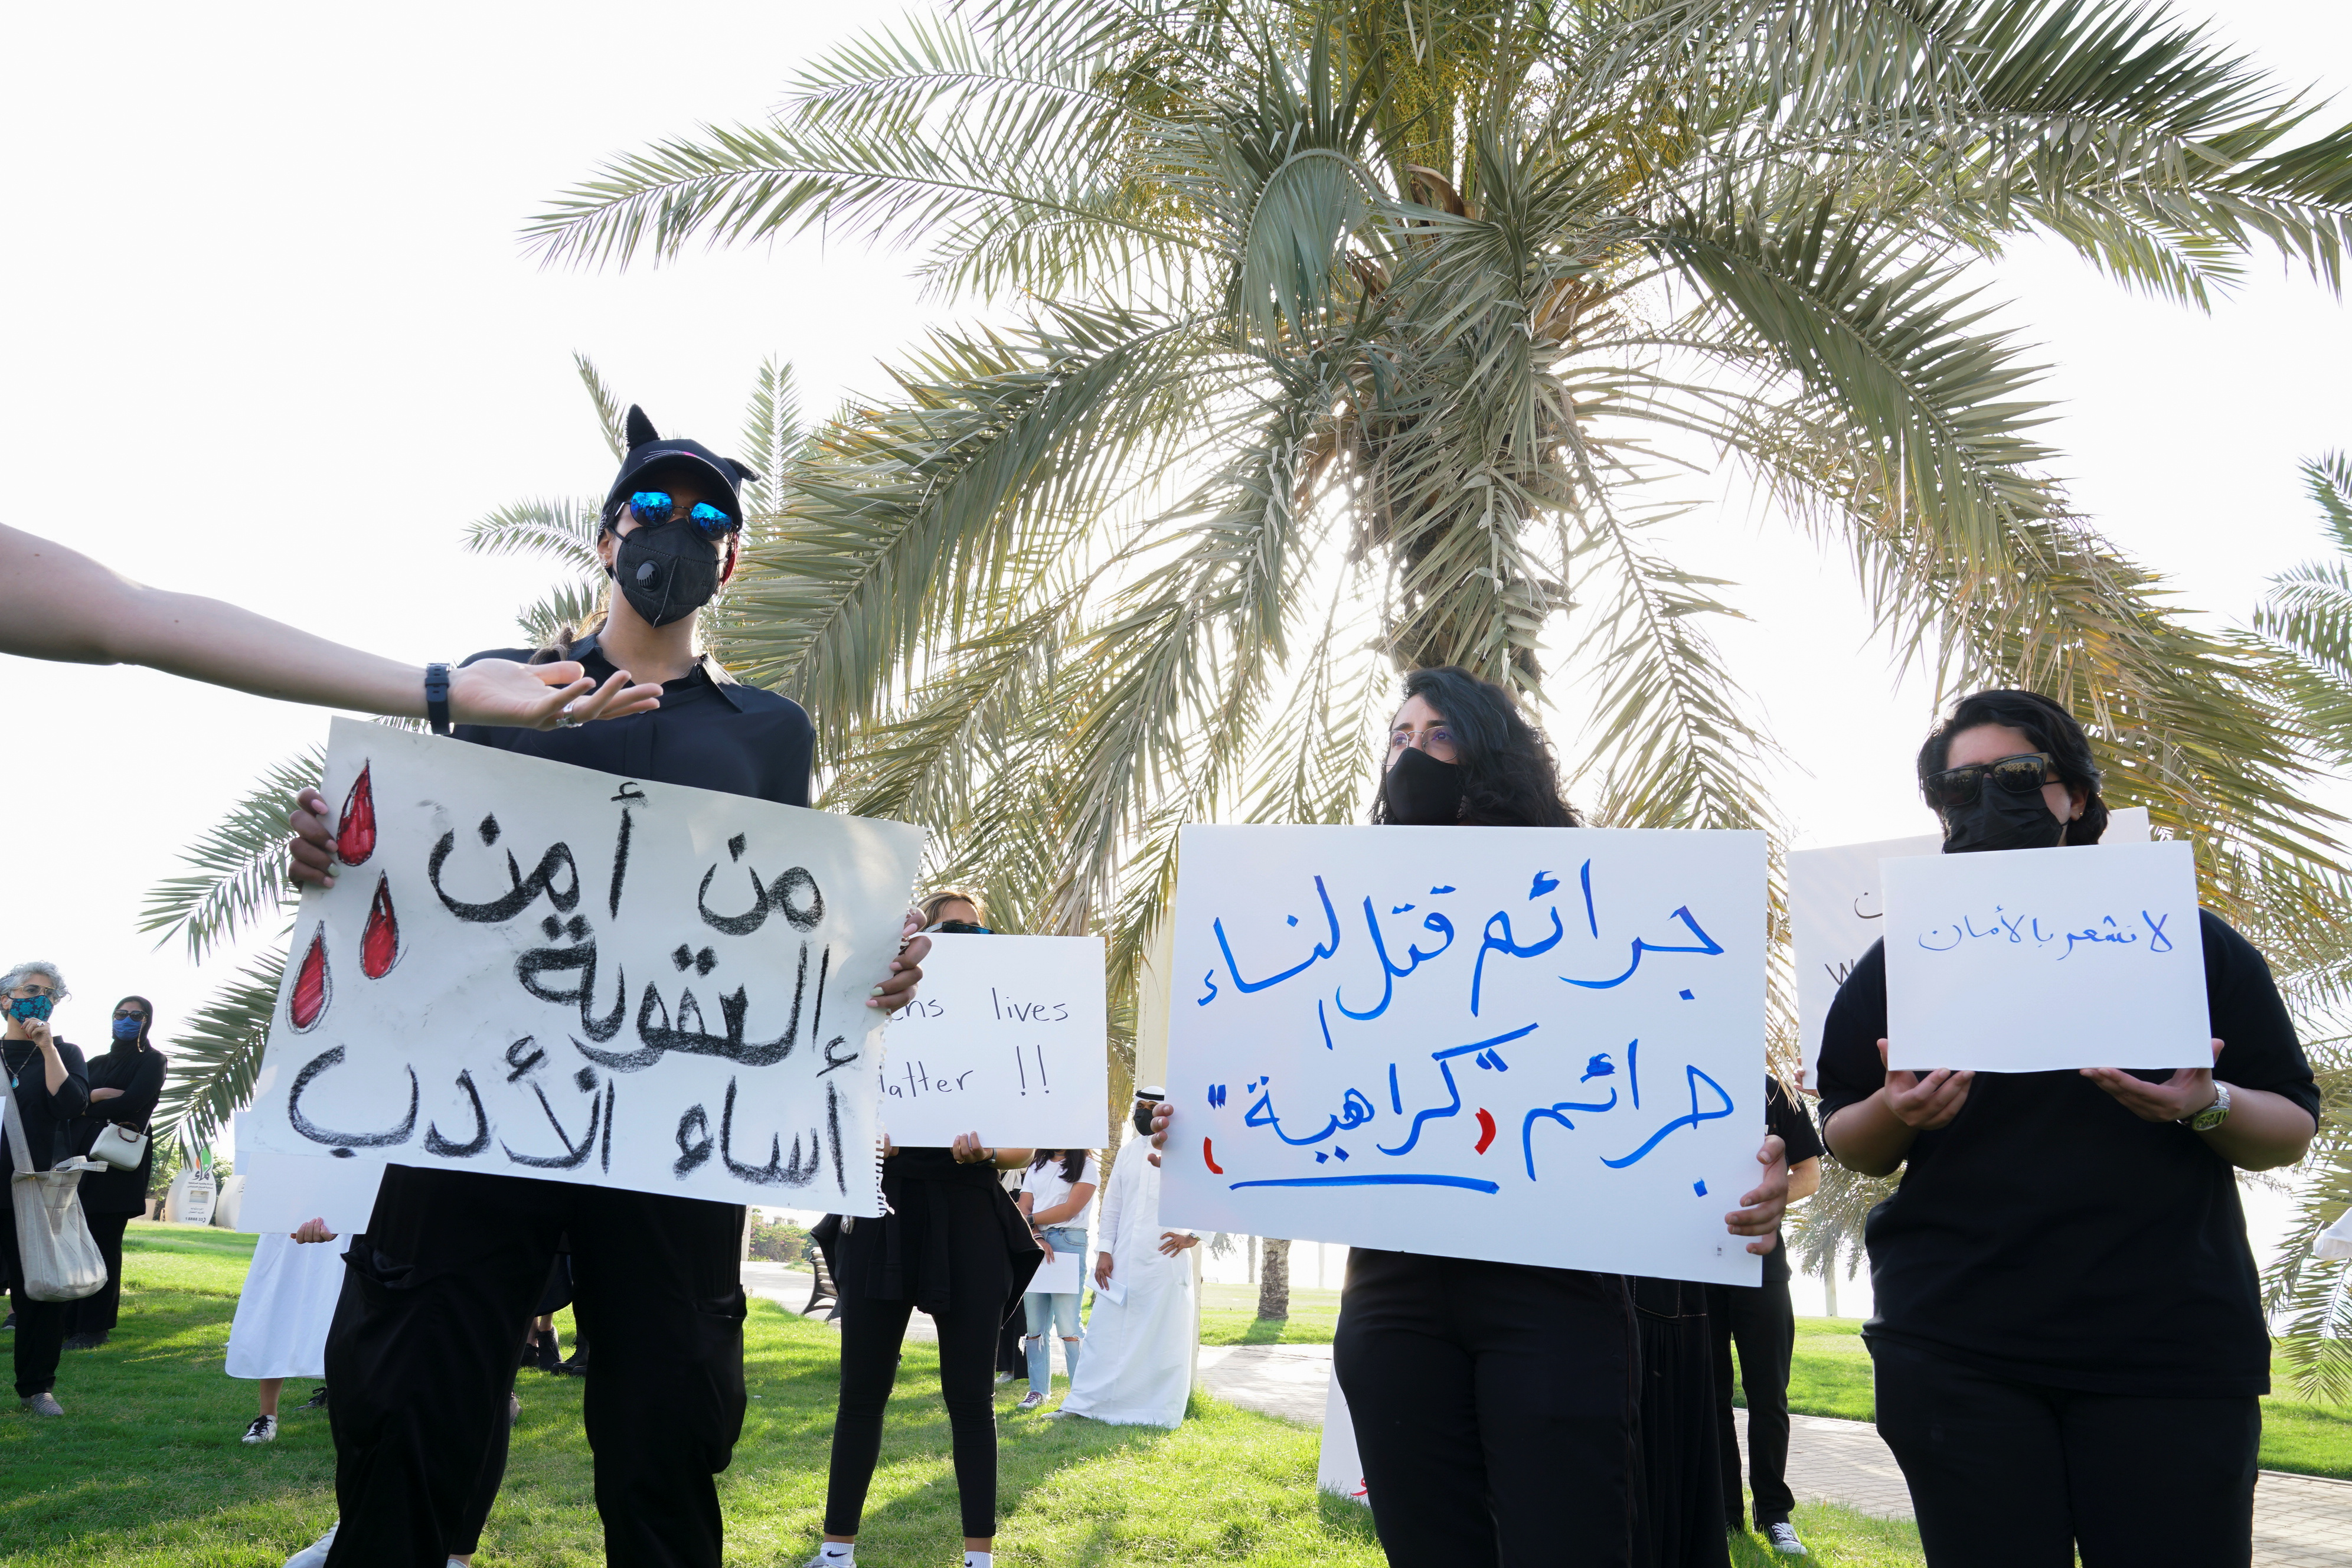 Kuwaitis gather to protest against violence against women in Kuwait City, Kuwait, April 22,2021. REUTERS/Stephanie McGehee